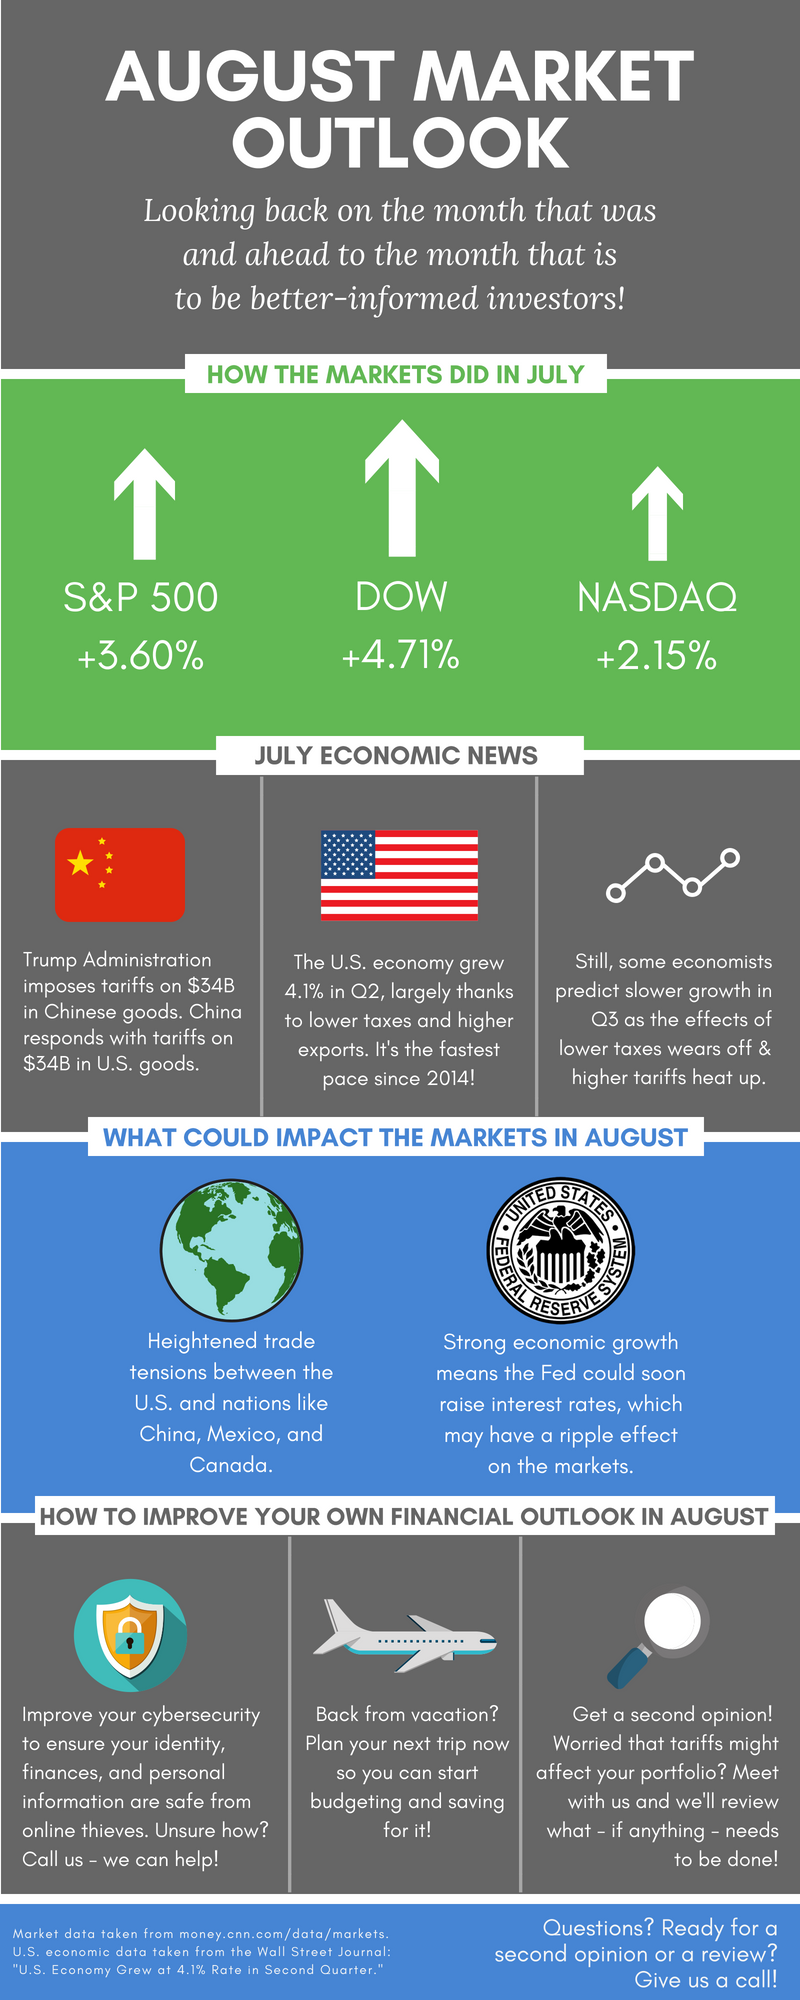 August 2018 Market Outlook IMAGE